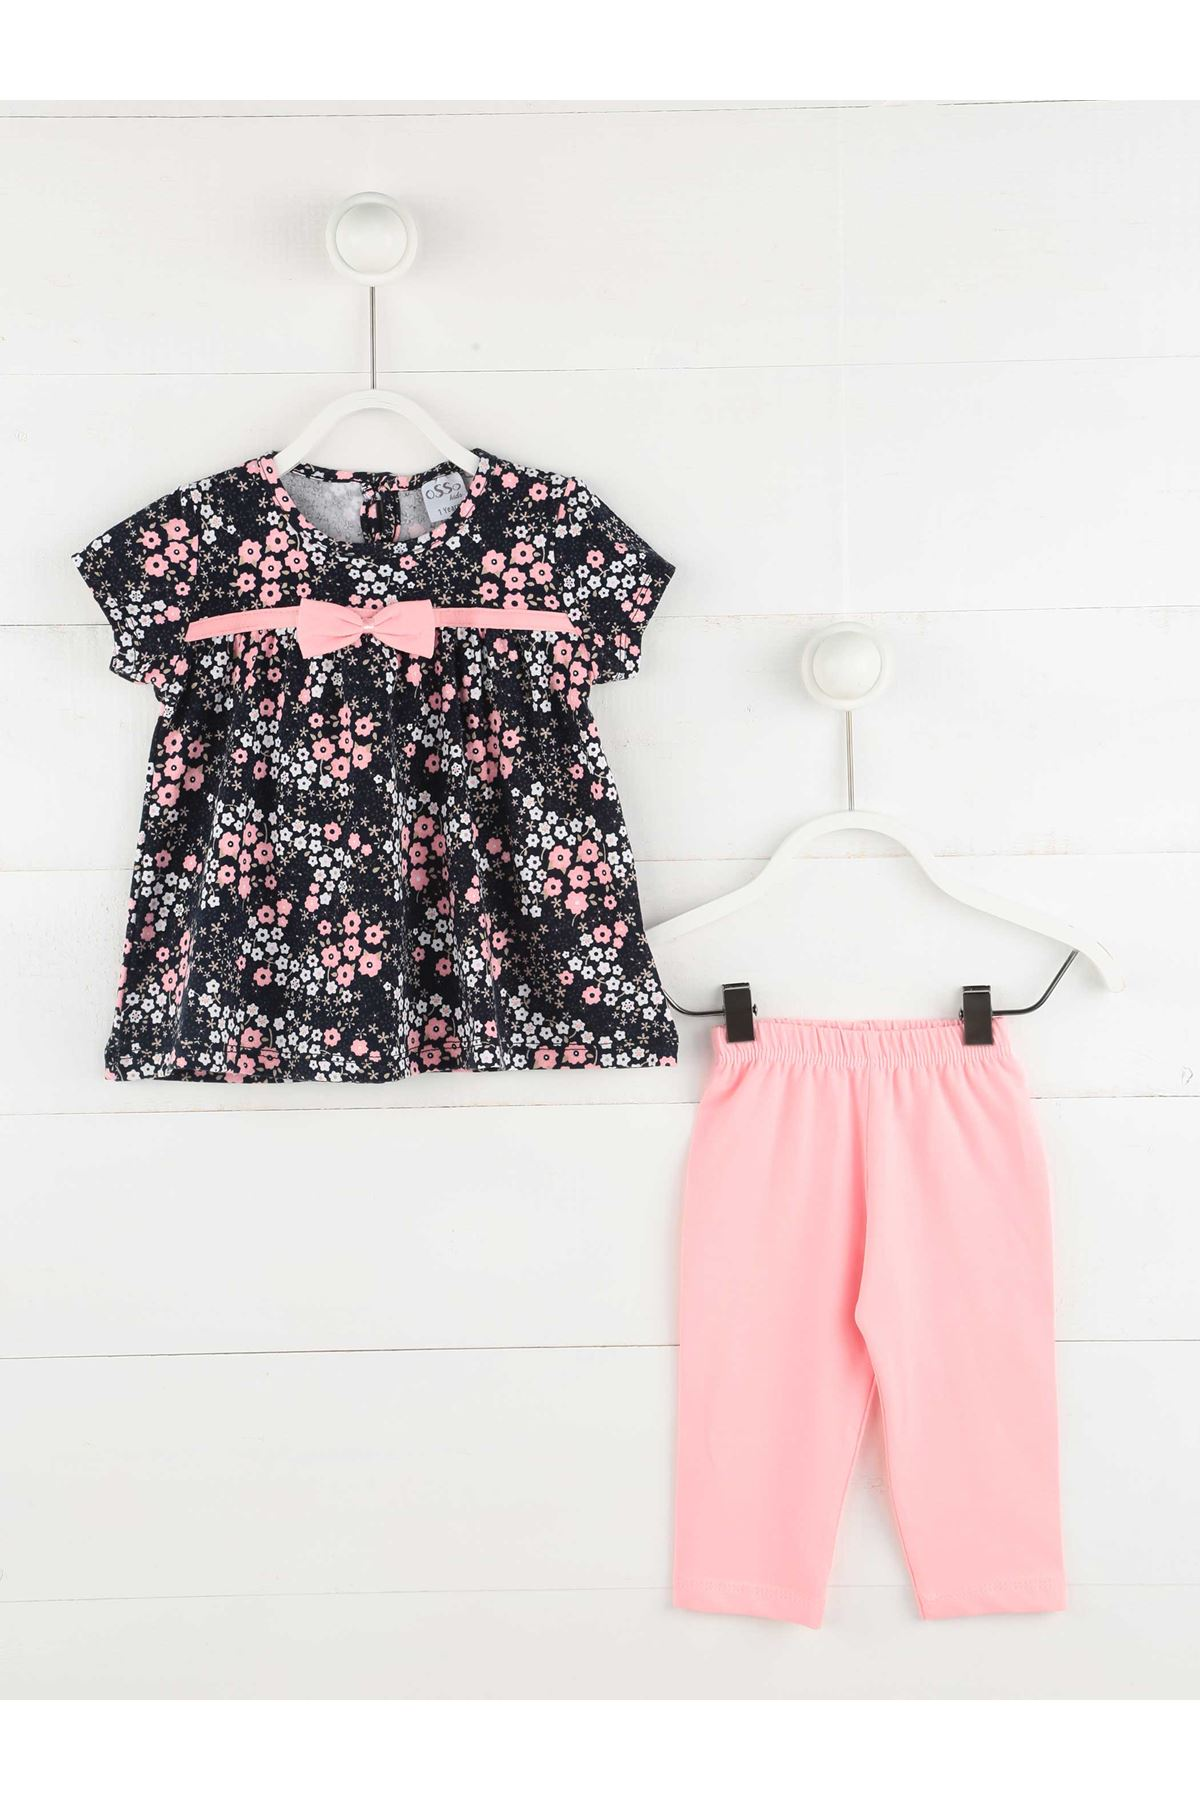 Baby Casual Daily Suit Tights Dress Daily Floral Pattern Spring Summer Girls Pink Ribbons Kids Baby Clothes